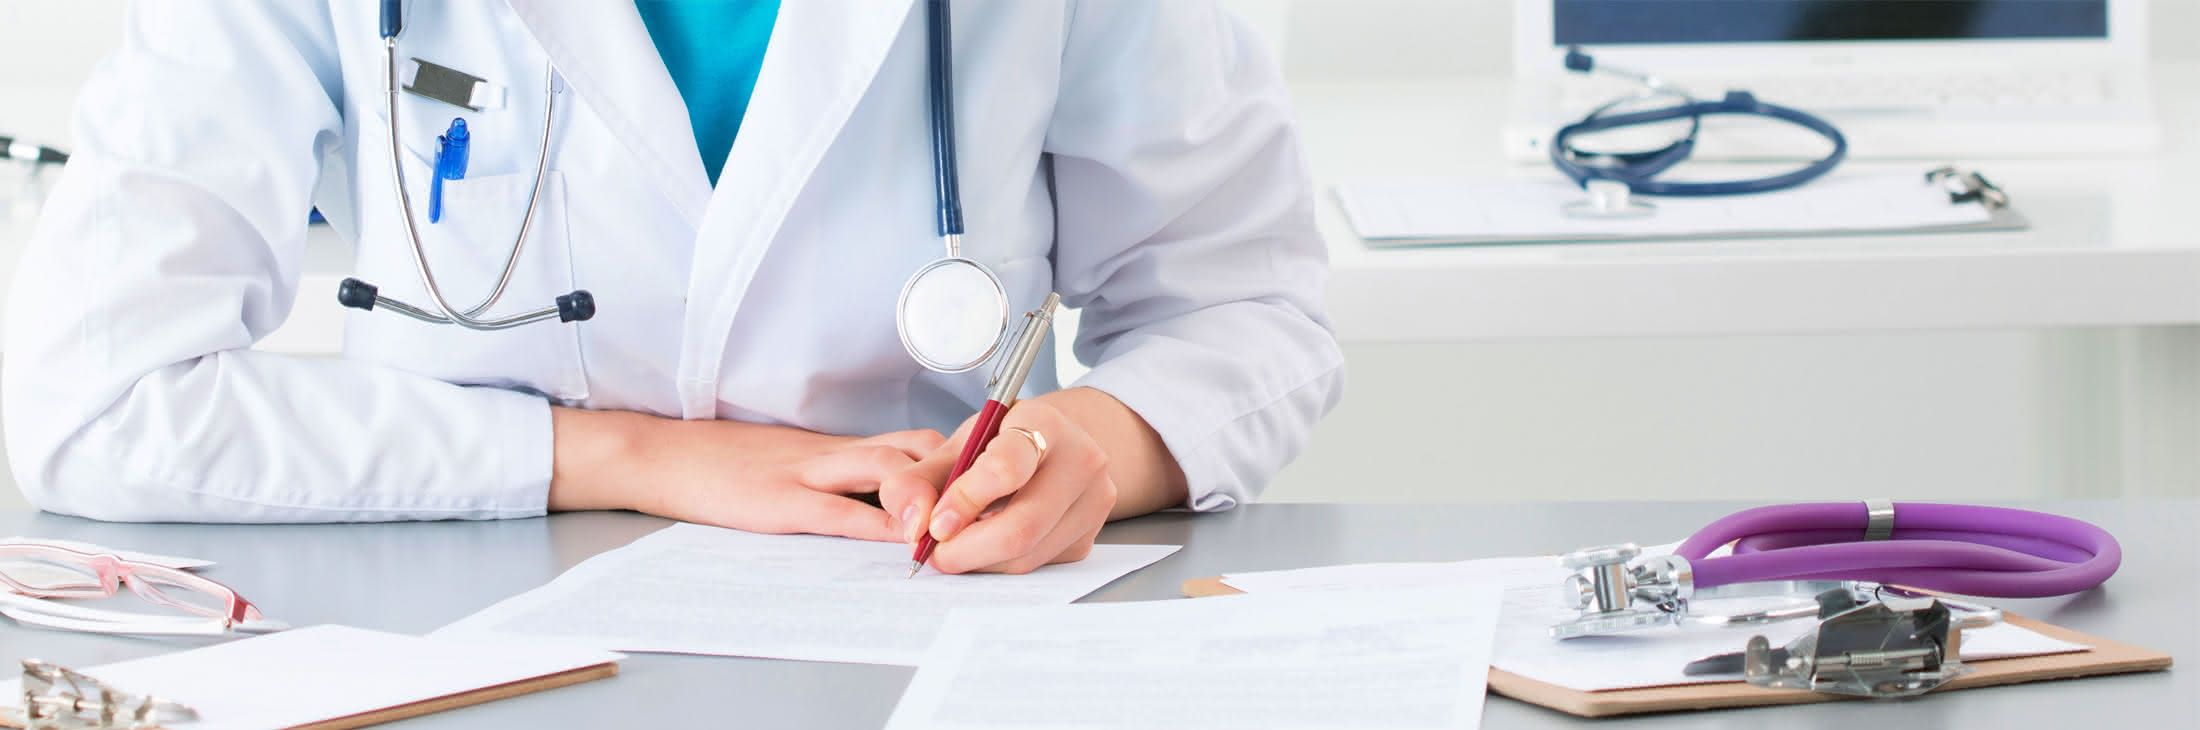 5 Best Personal Loan Companies For Doctors In 2020 With Images